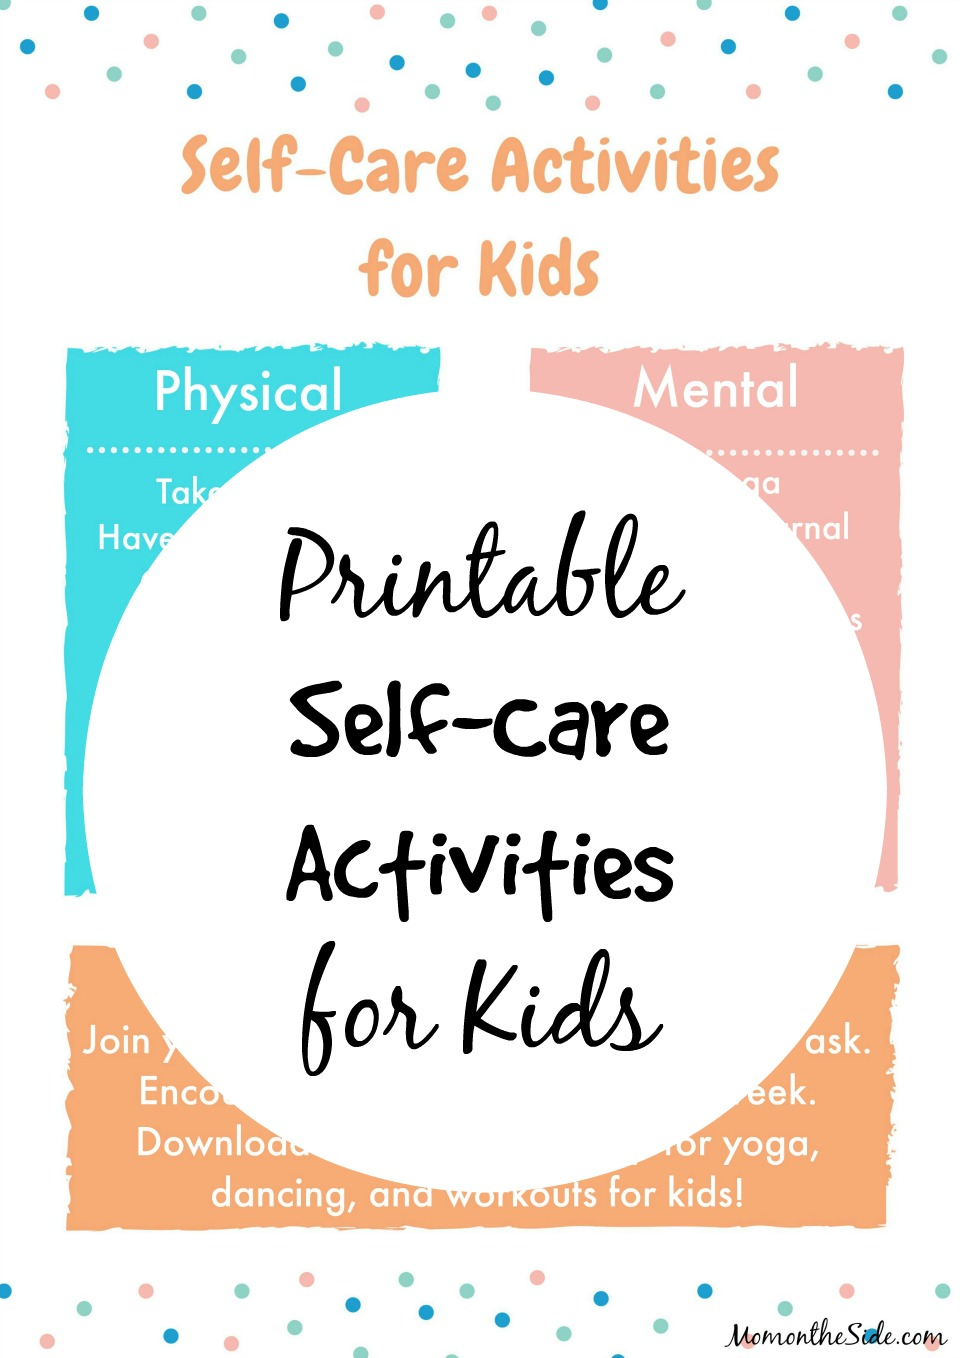 Ways to Encourage Self-Care for Kids: Printable Self-Care Ideas for Kids